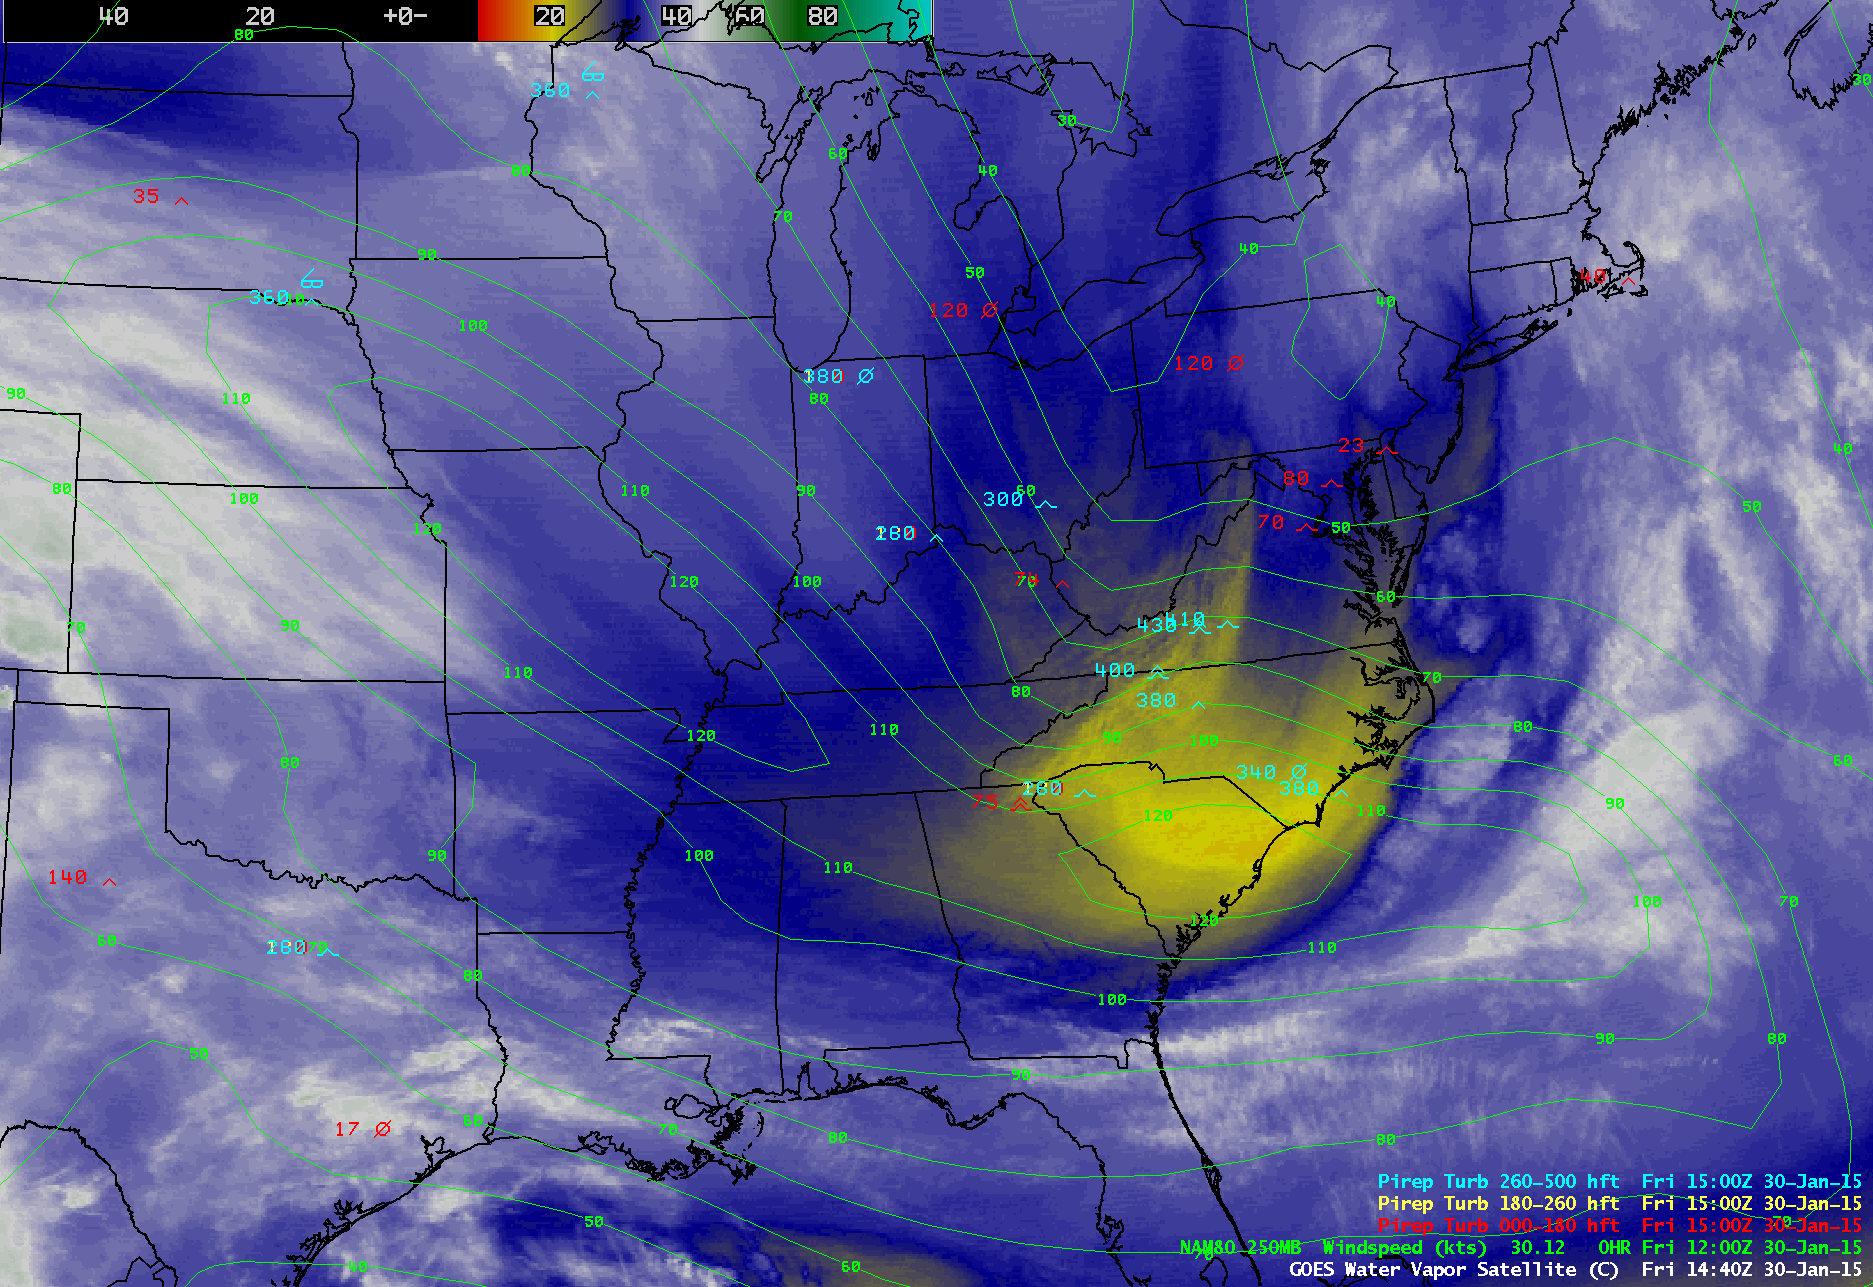 GOES-13 water vapor image with NAM80 250 hPa wind isotachs and pilot reports